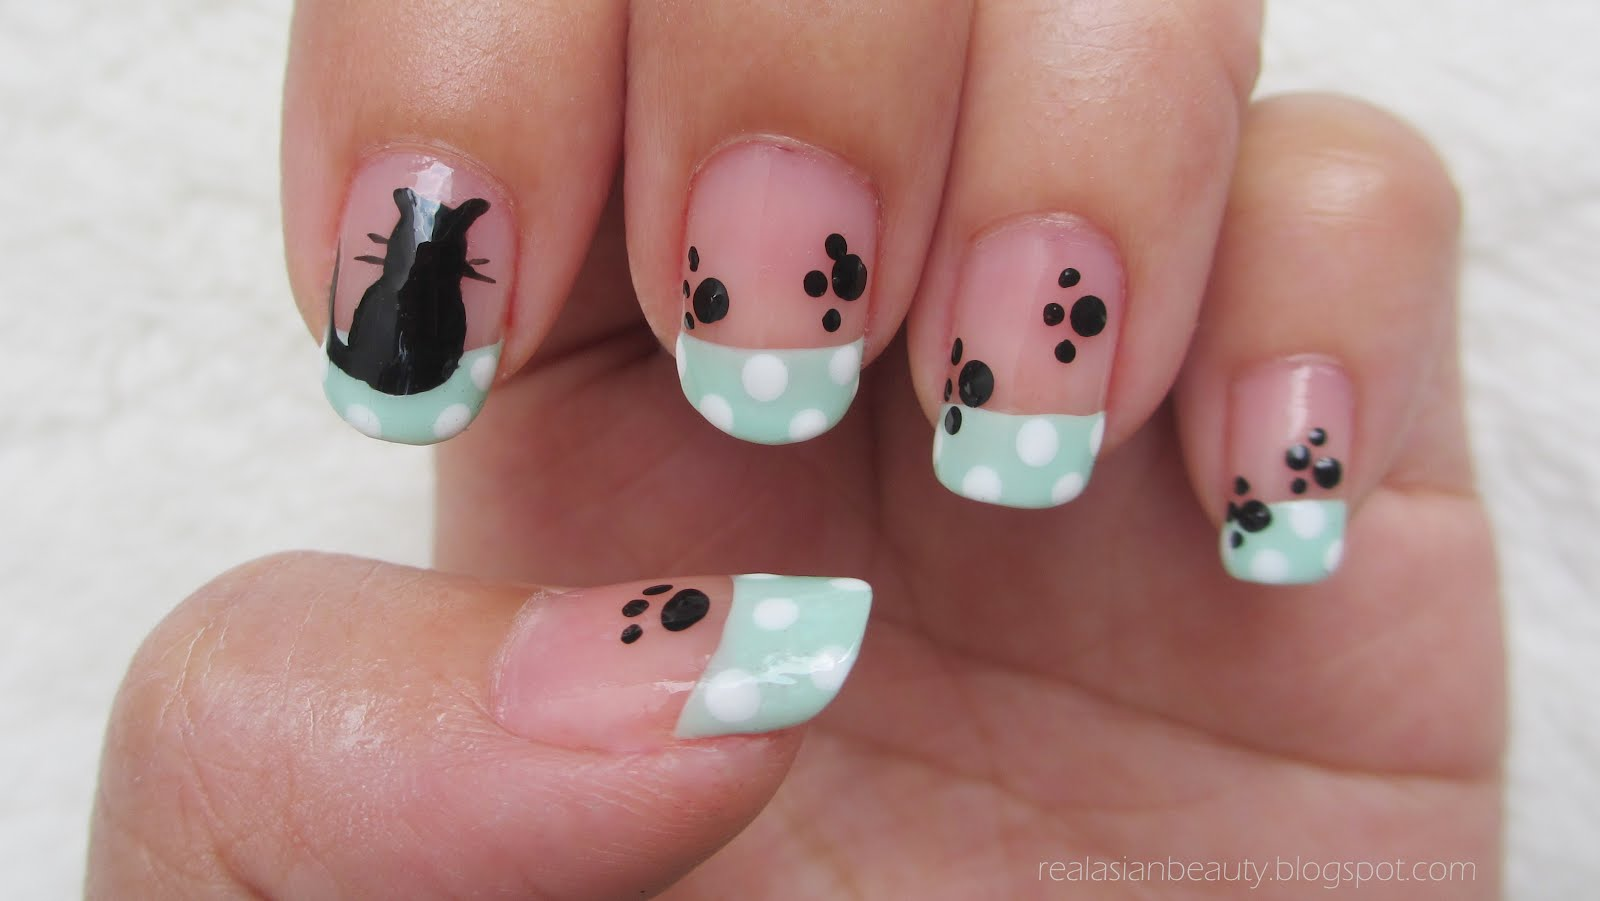 Real Asian Beauty Kitten And Paws Nail Art